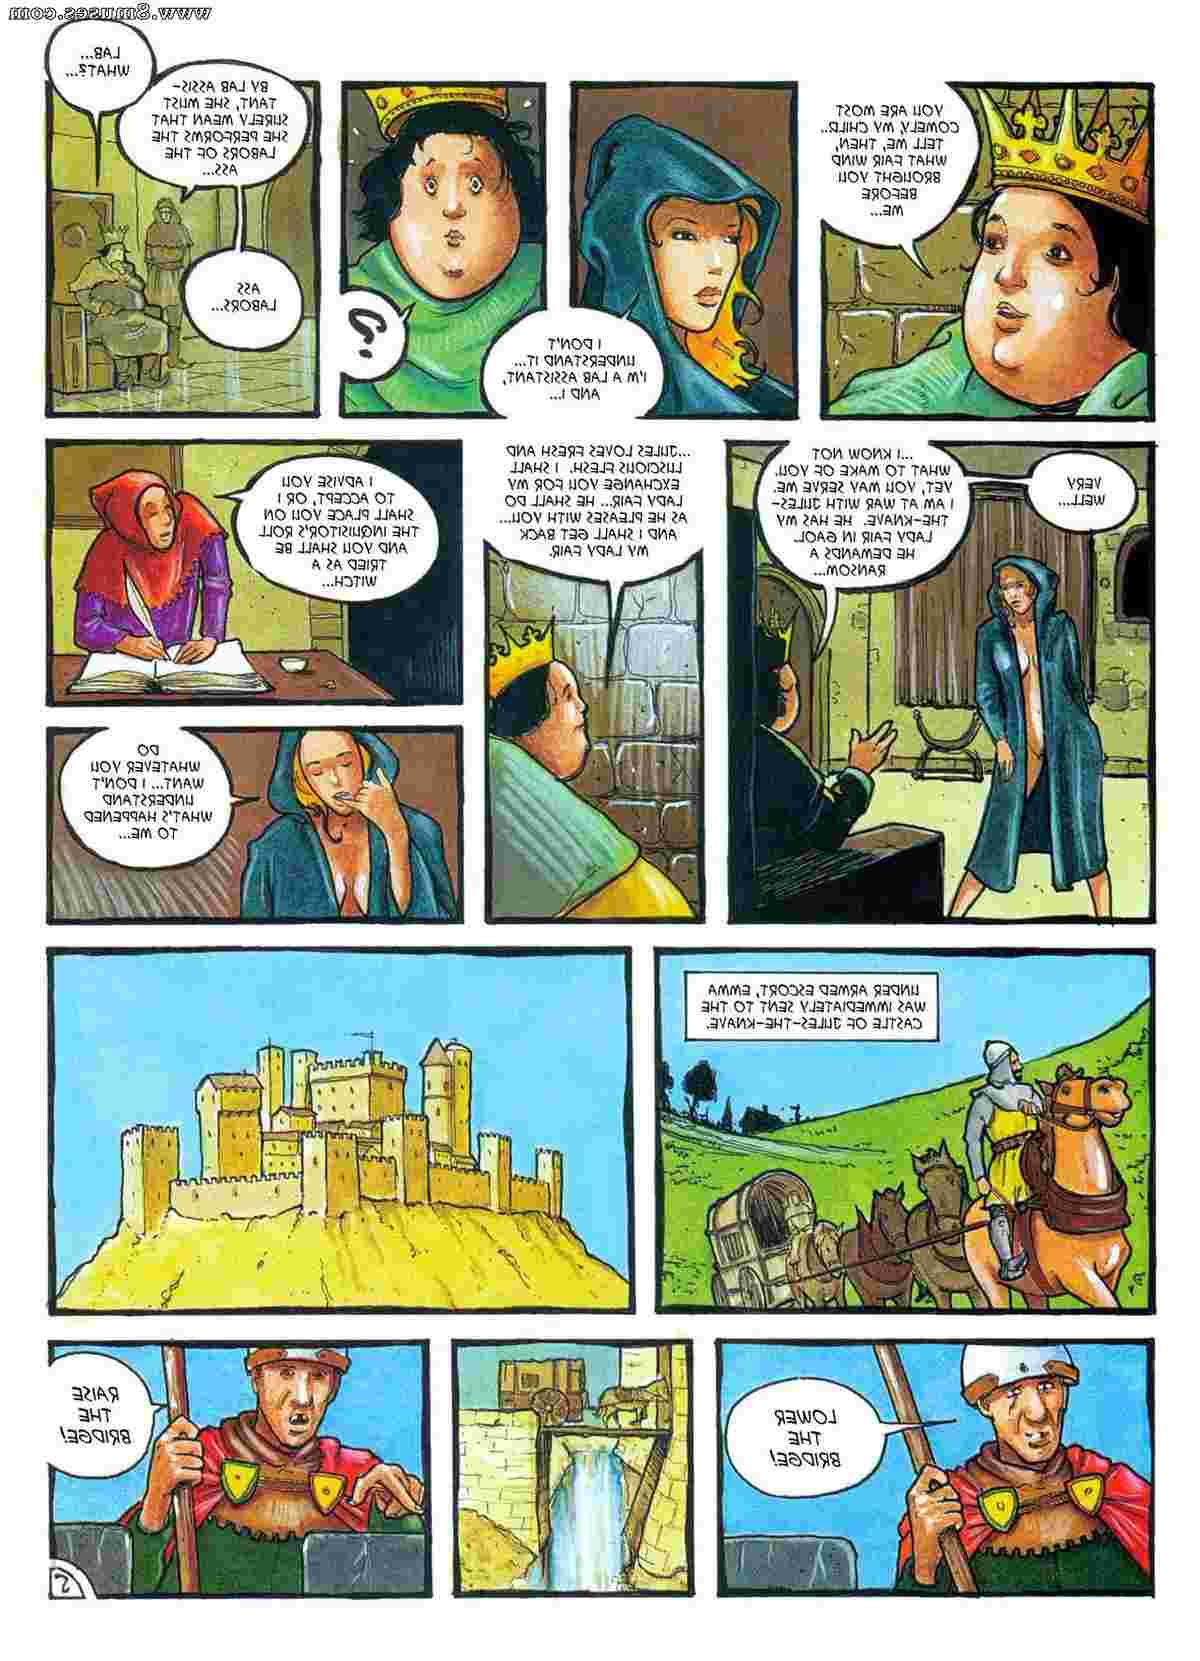 Topaz-Comics/Emma-Adrift-In-Time Emma_Adrift_In_Time__8muses_-_Sex_and_Porn_Comics_6.jpg